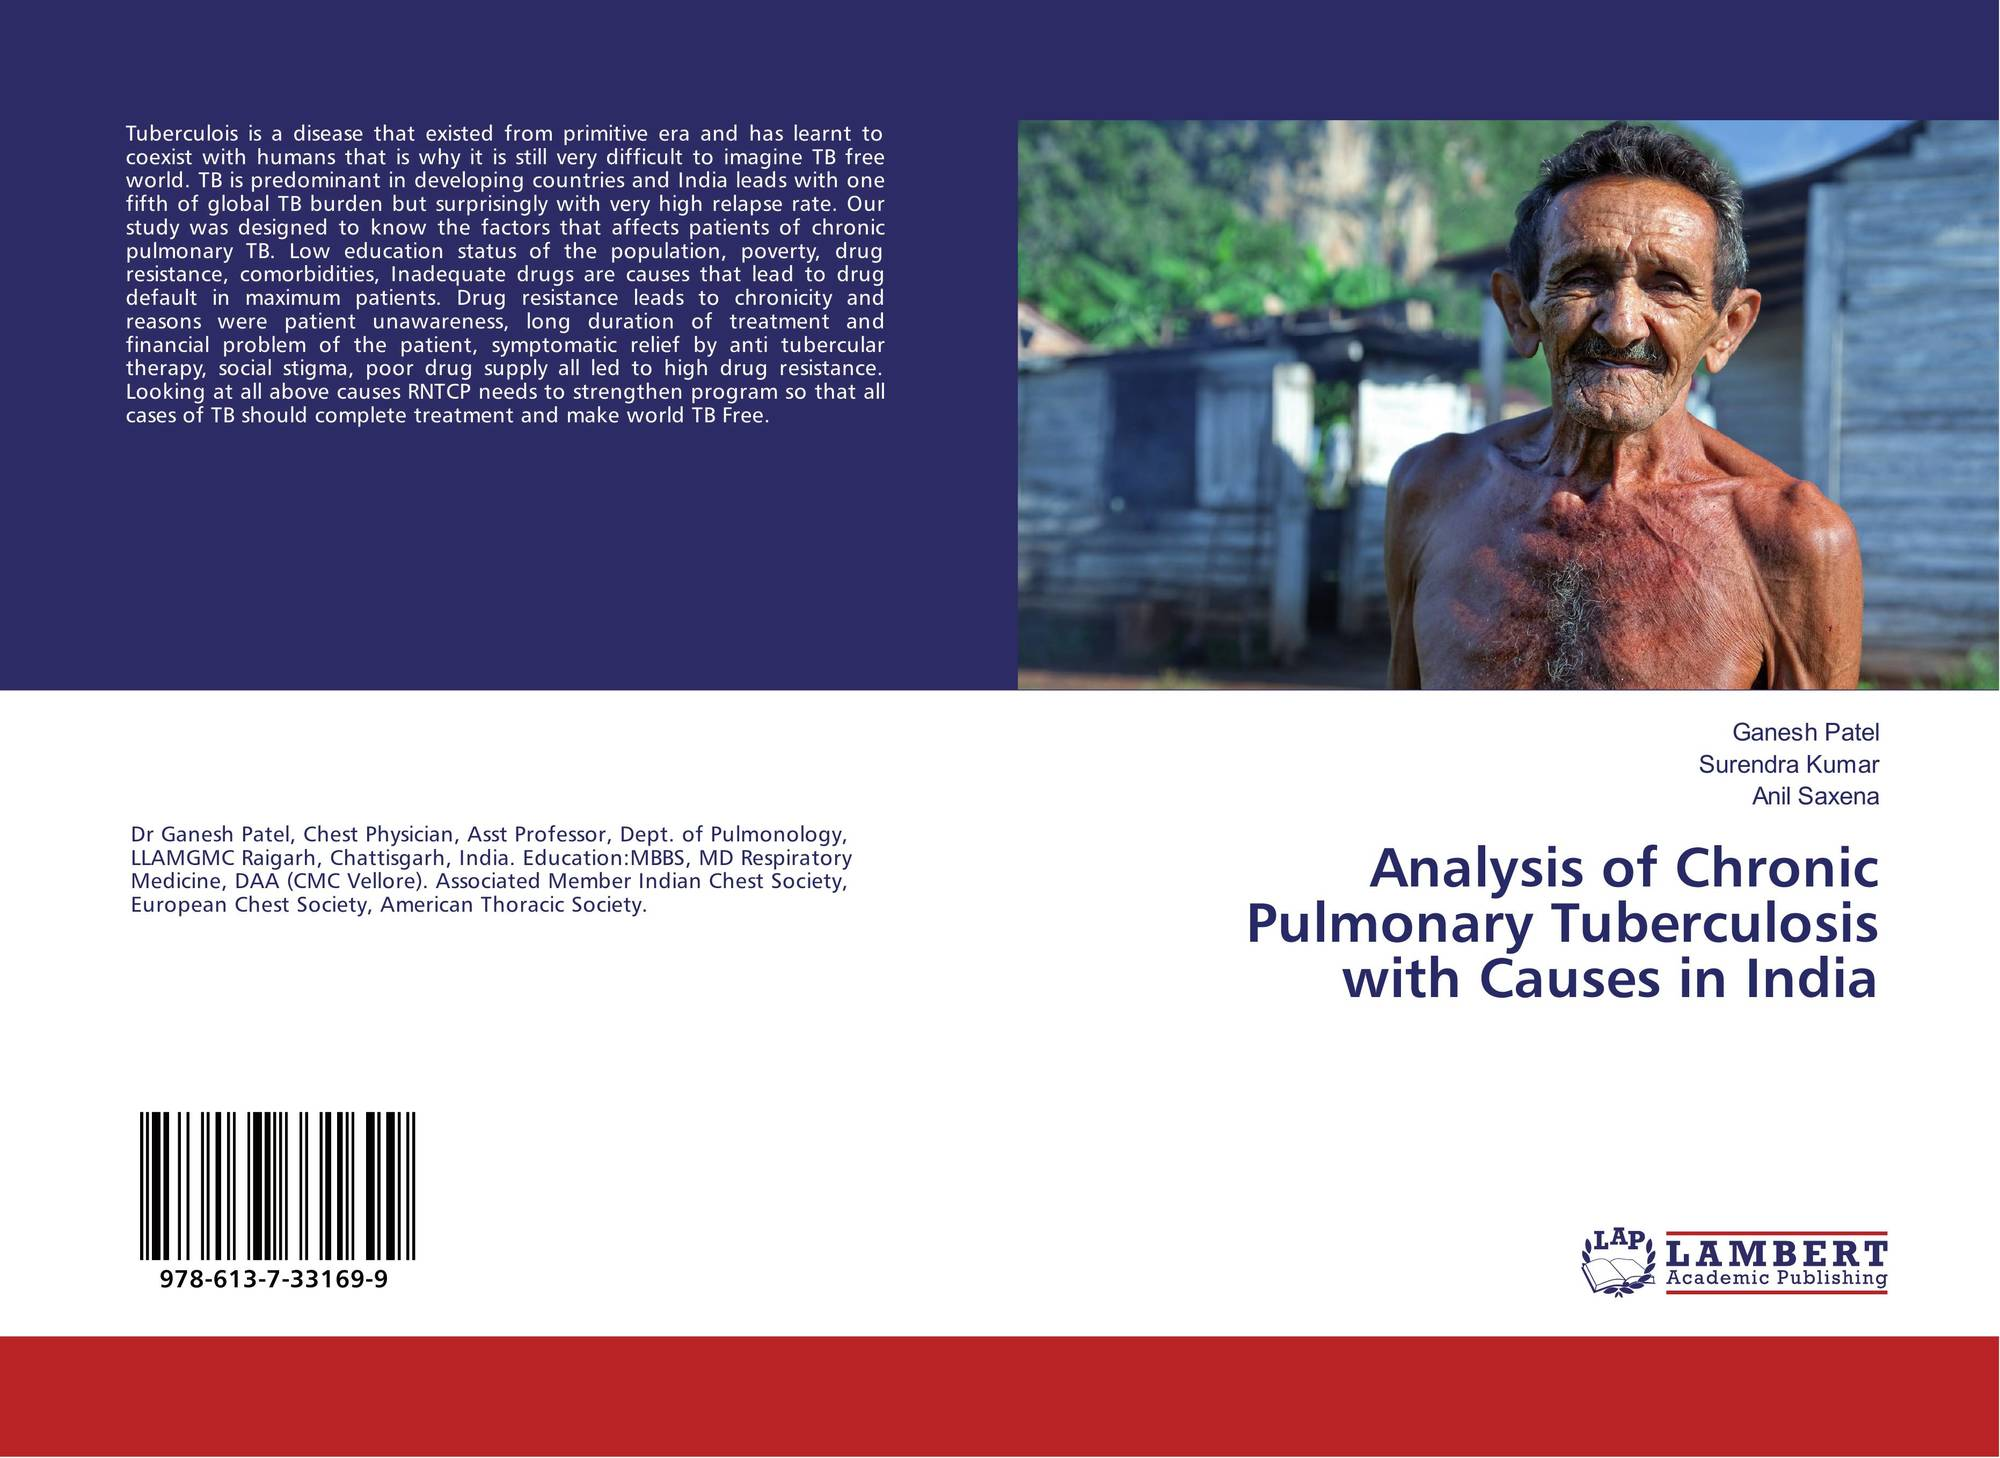 Analysis of Chronic Pulmonary Tuberculosis with Causes in